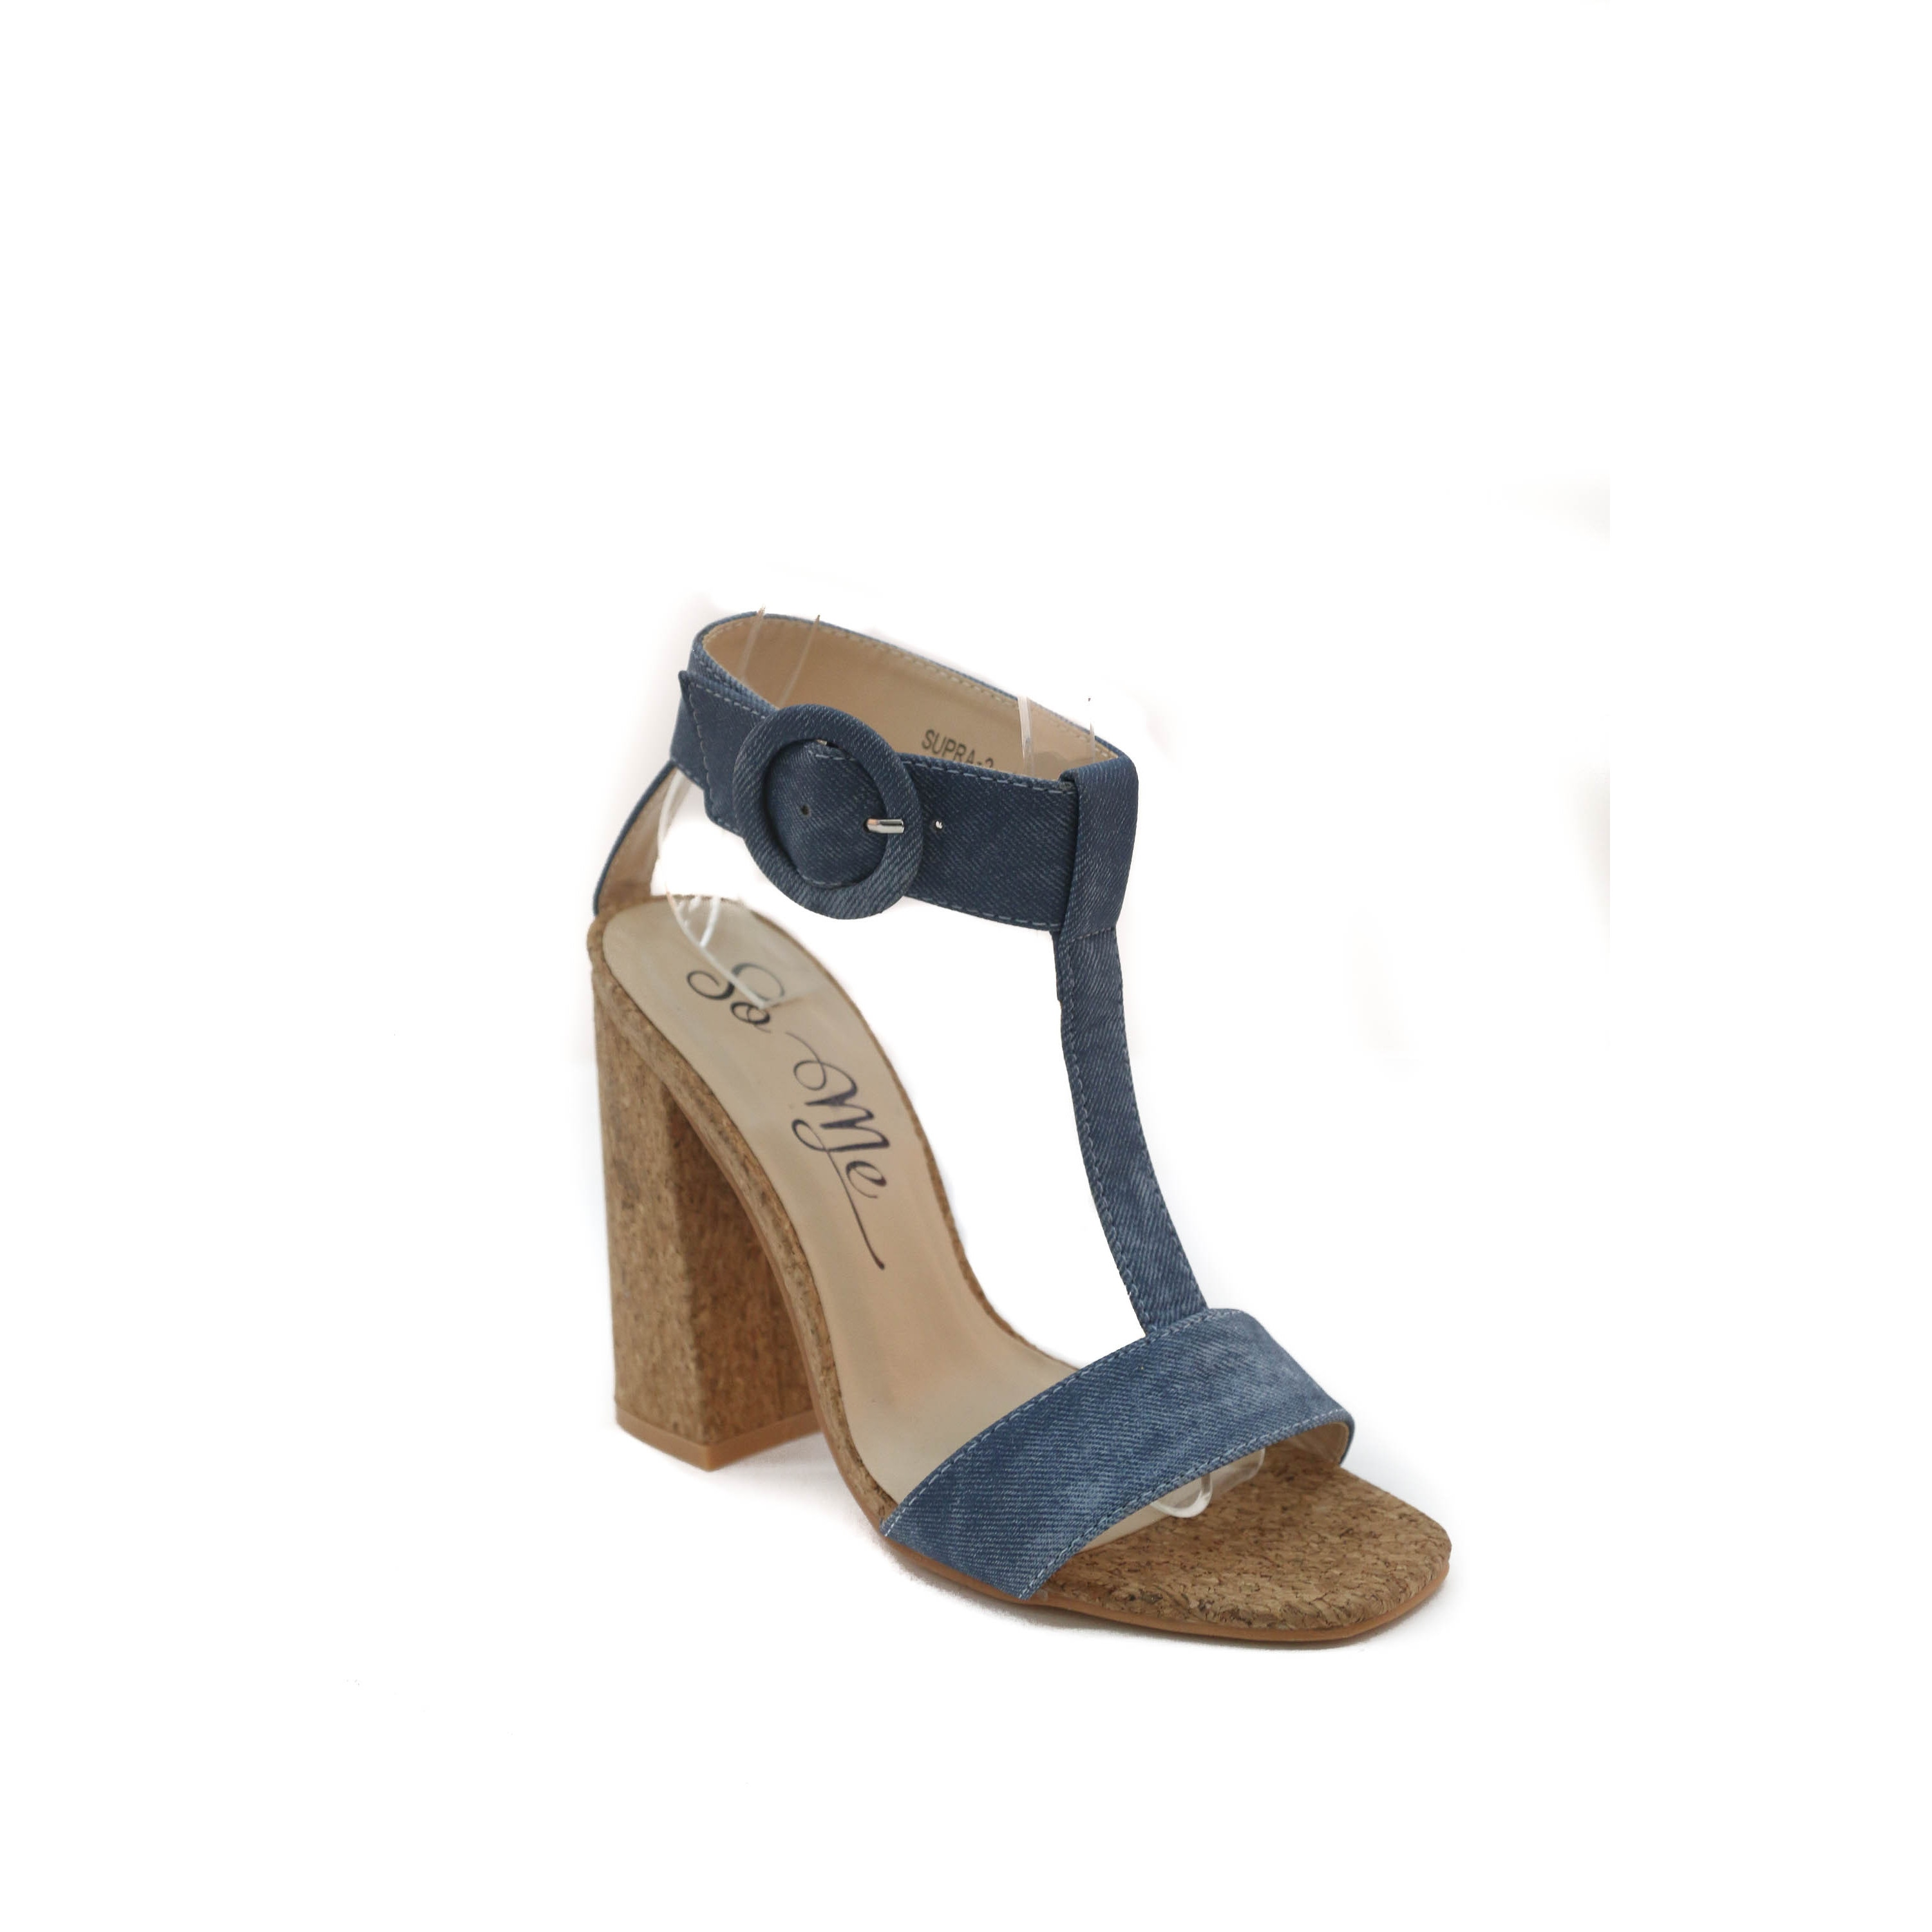 30a30b0dedc78 Shop Hadari Women s T-Strap Sandals with Wooden Heels - Free Shipping On  Orders Over  45 - Overstock.com - 12106043